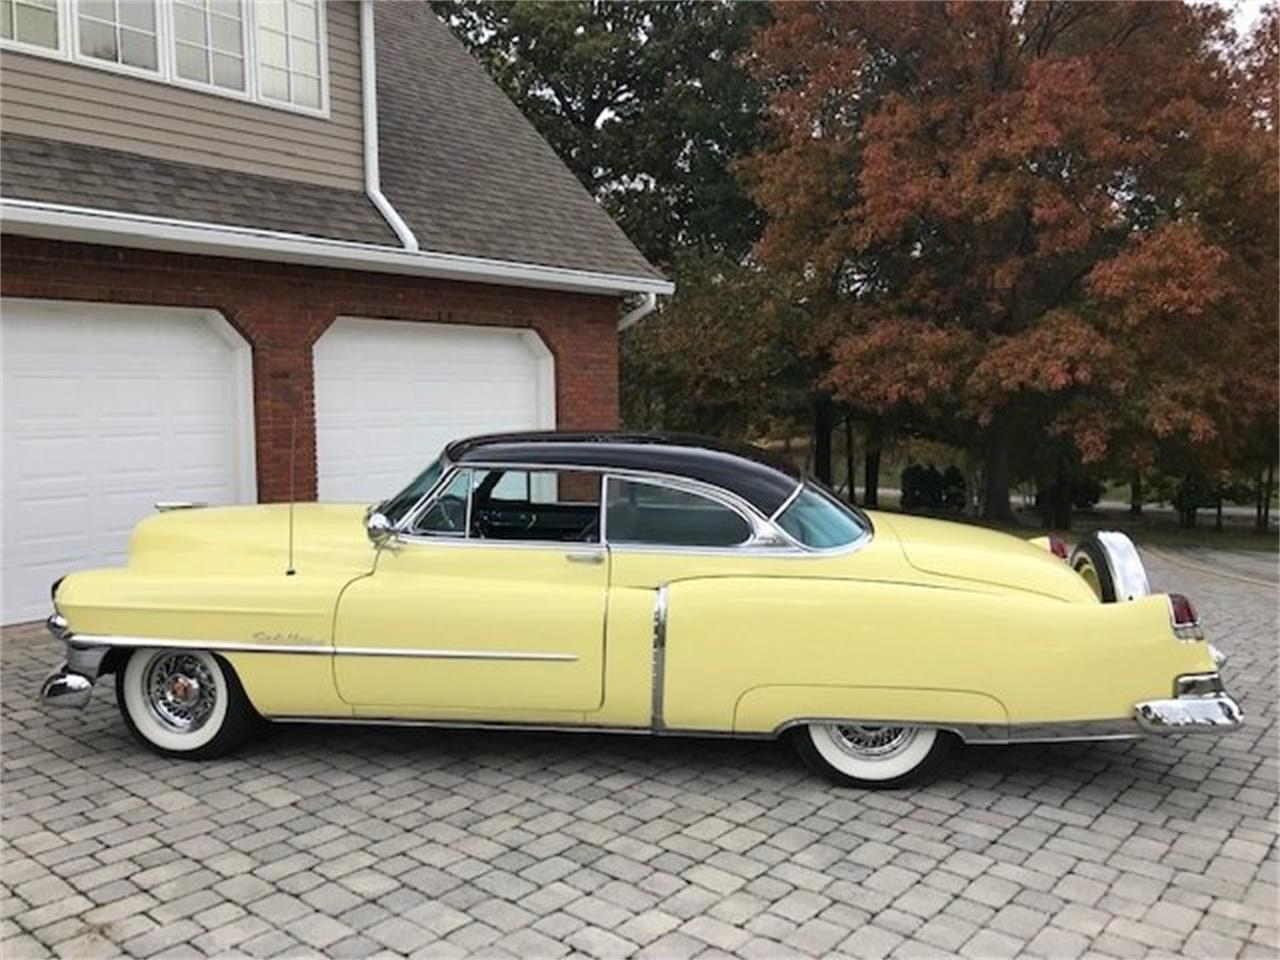 Large Picture of Classic 1953 Cadillac Coupe Auction Vehicle Offered by Tom Mack Auctions - Q4VT